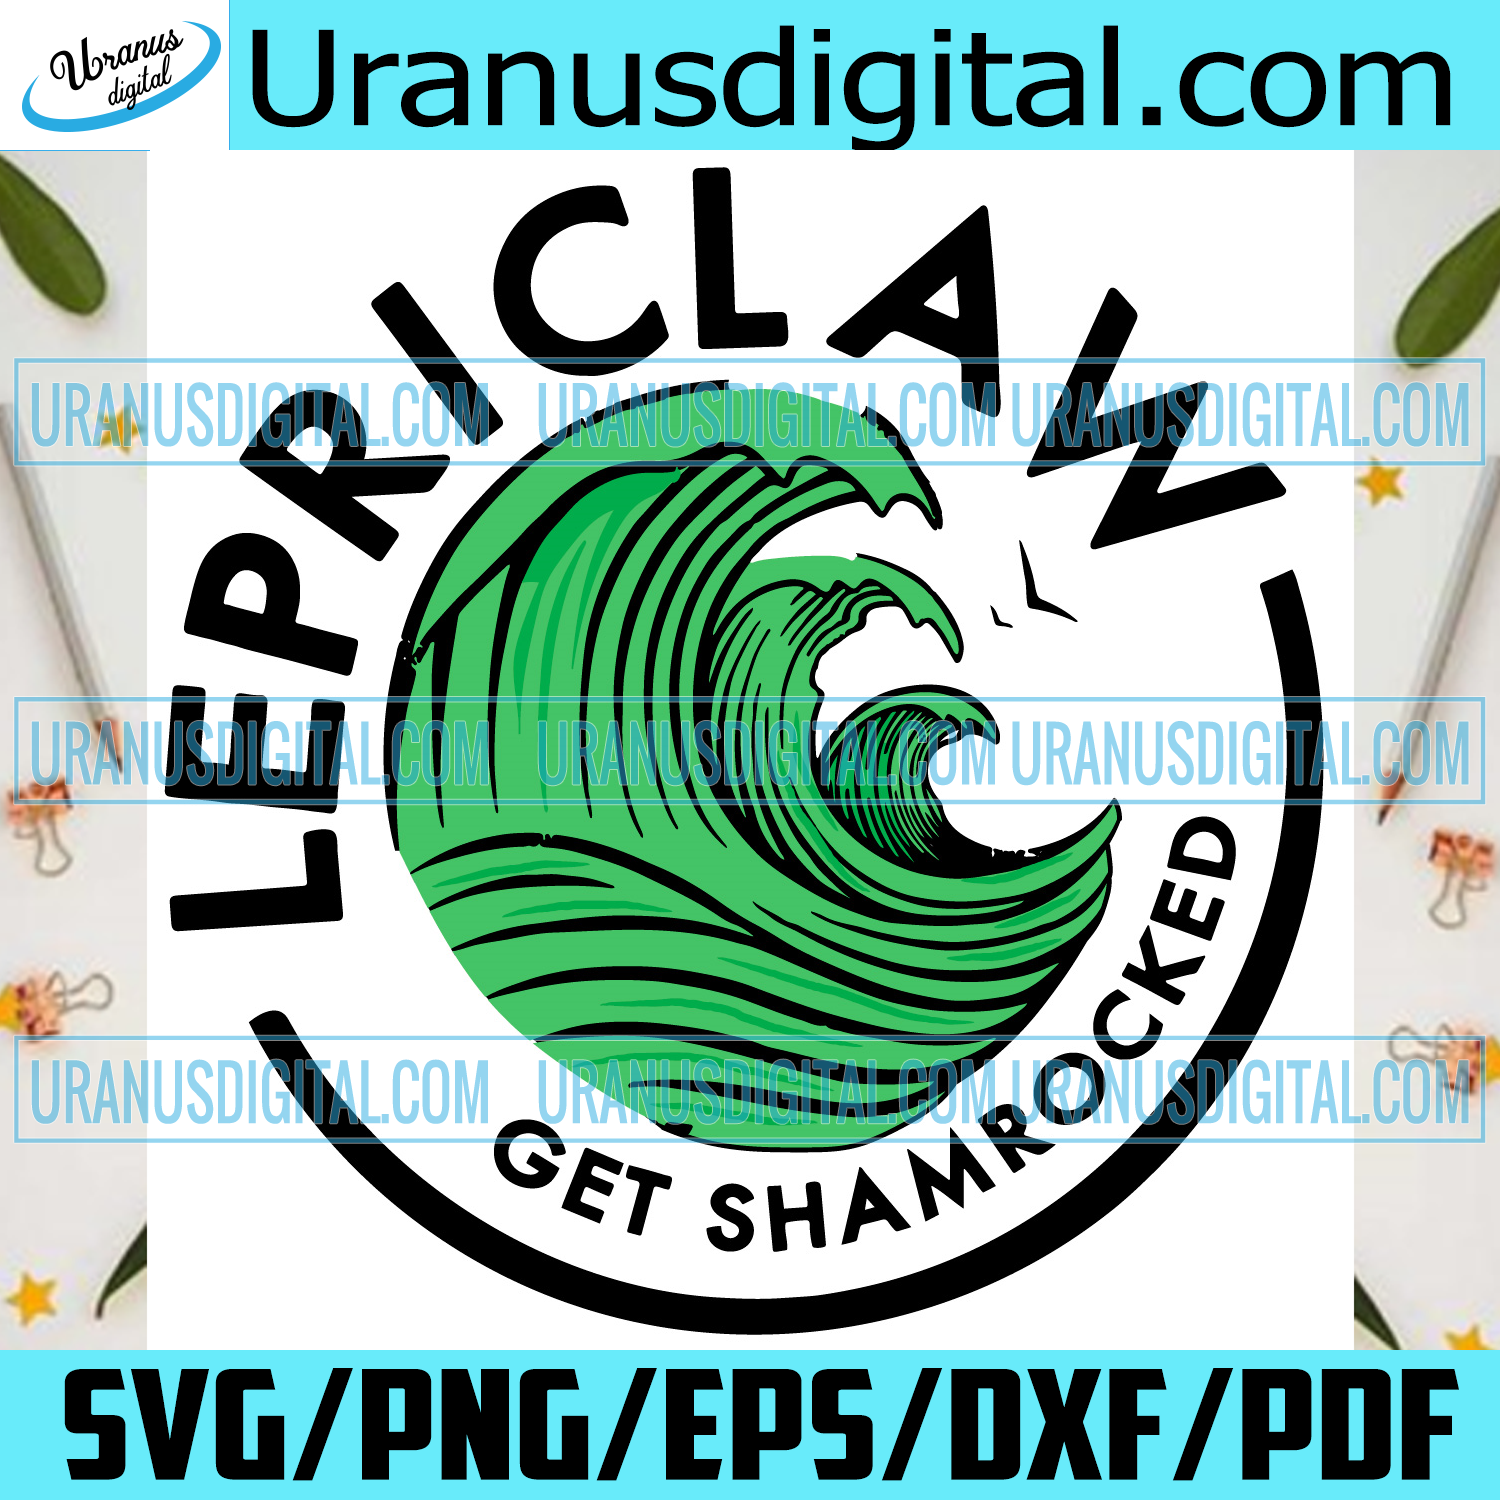 St Patricks Day Funny Lepriclaw St Pattys Day Svg, Patrick Svg, Svg, Lepriclaw Svg, Funny Lepriclaw Svg, Shamrocks Svg, Lucky Svg, Shamrocks Gifts Svg, Green Wave Svg, Waves Love Svg, Happy St Patrick Day Svg, Patrick Gifts Svg